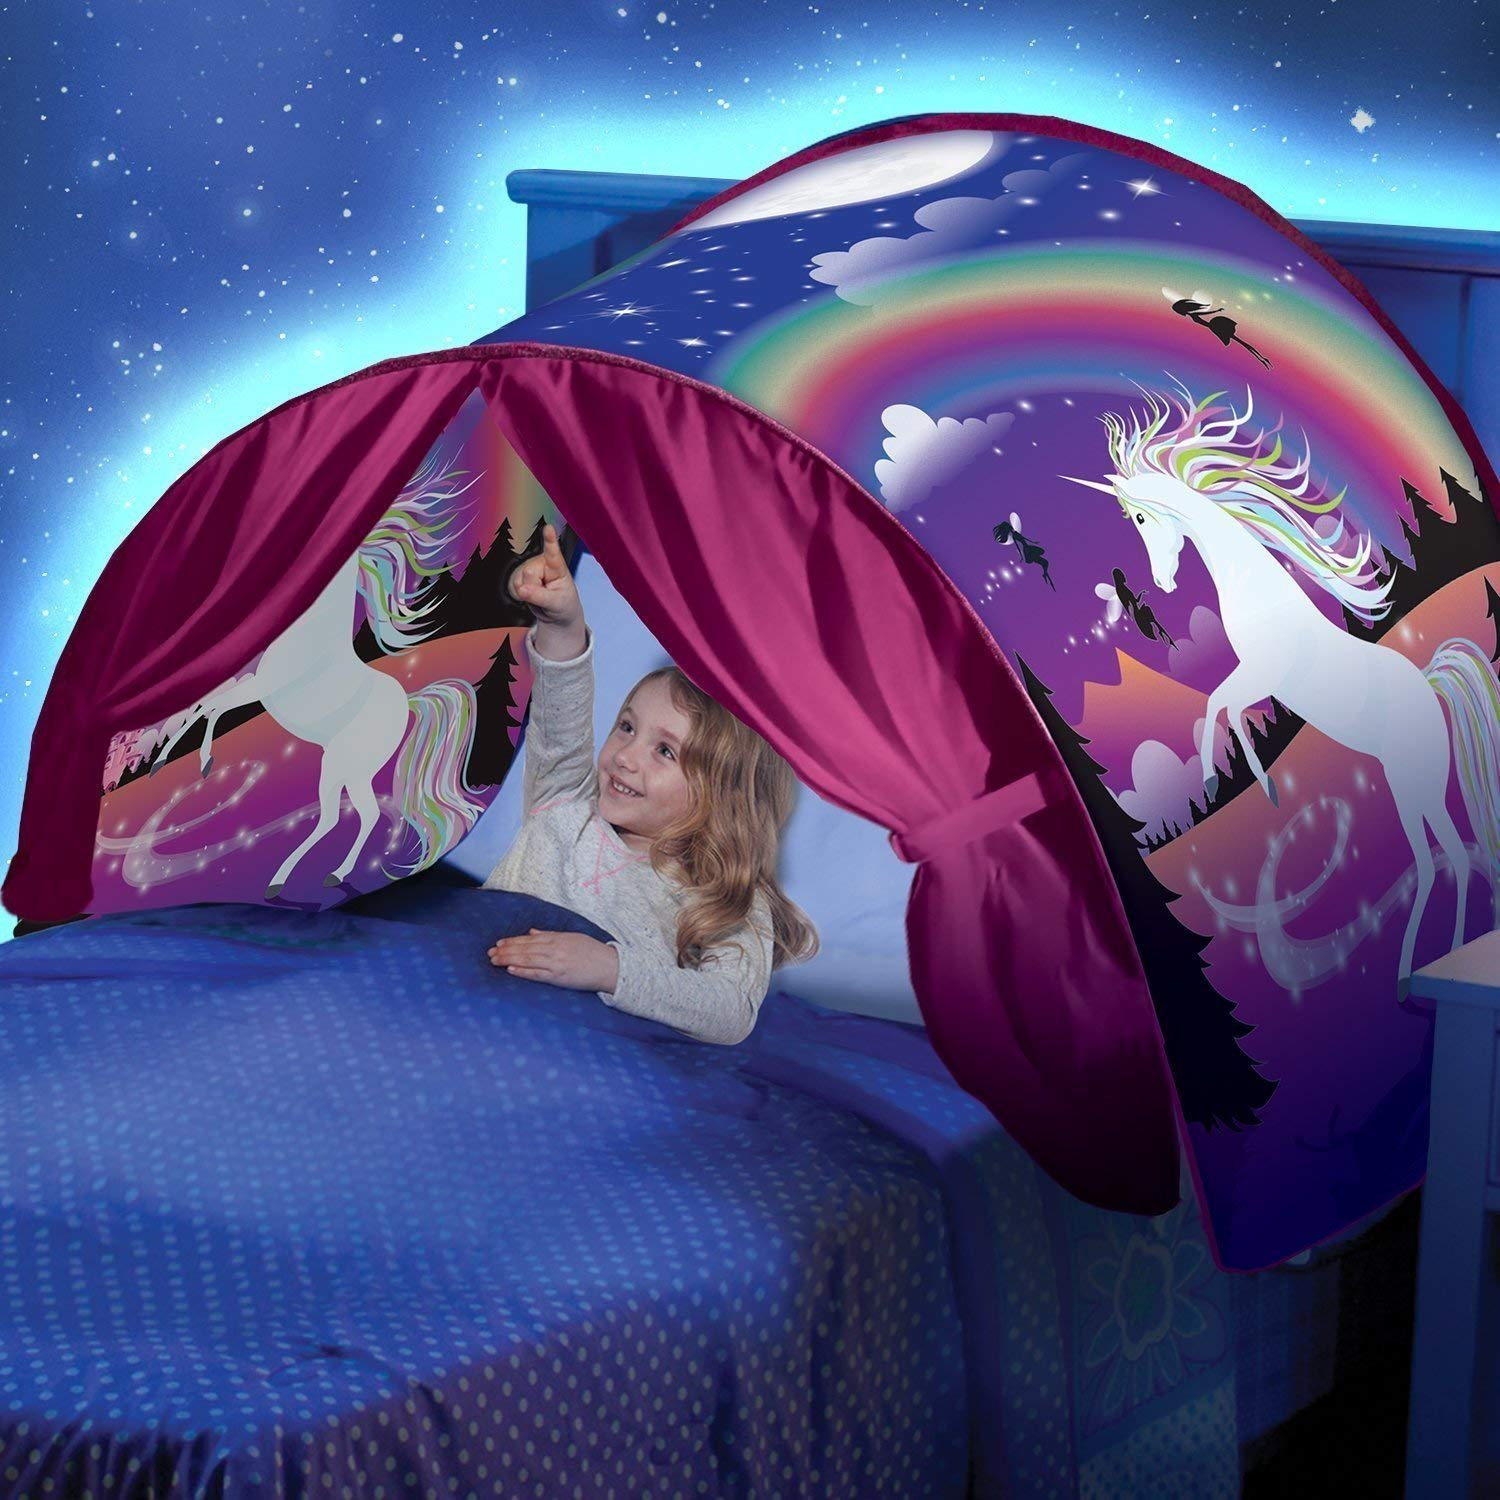 Luminous Dinosaur WJiXin Carpa Plegable Dream Magic Tents para ni/ño